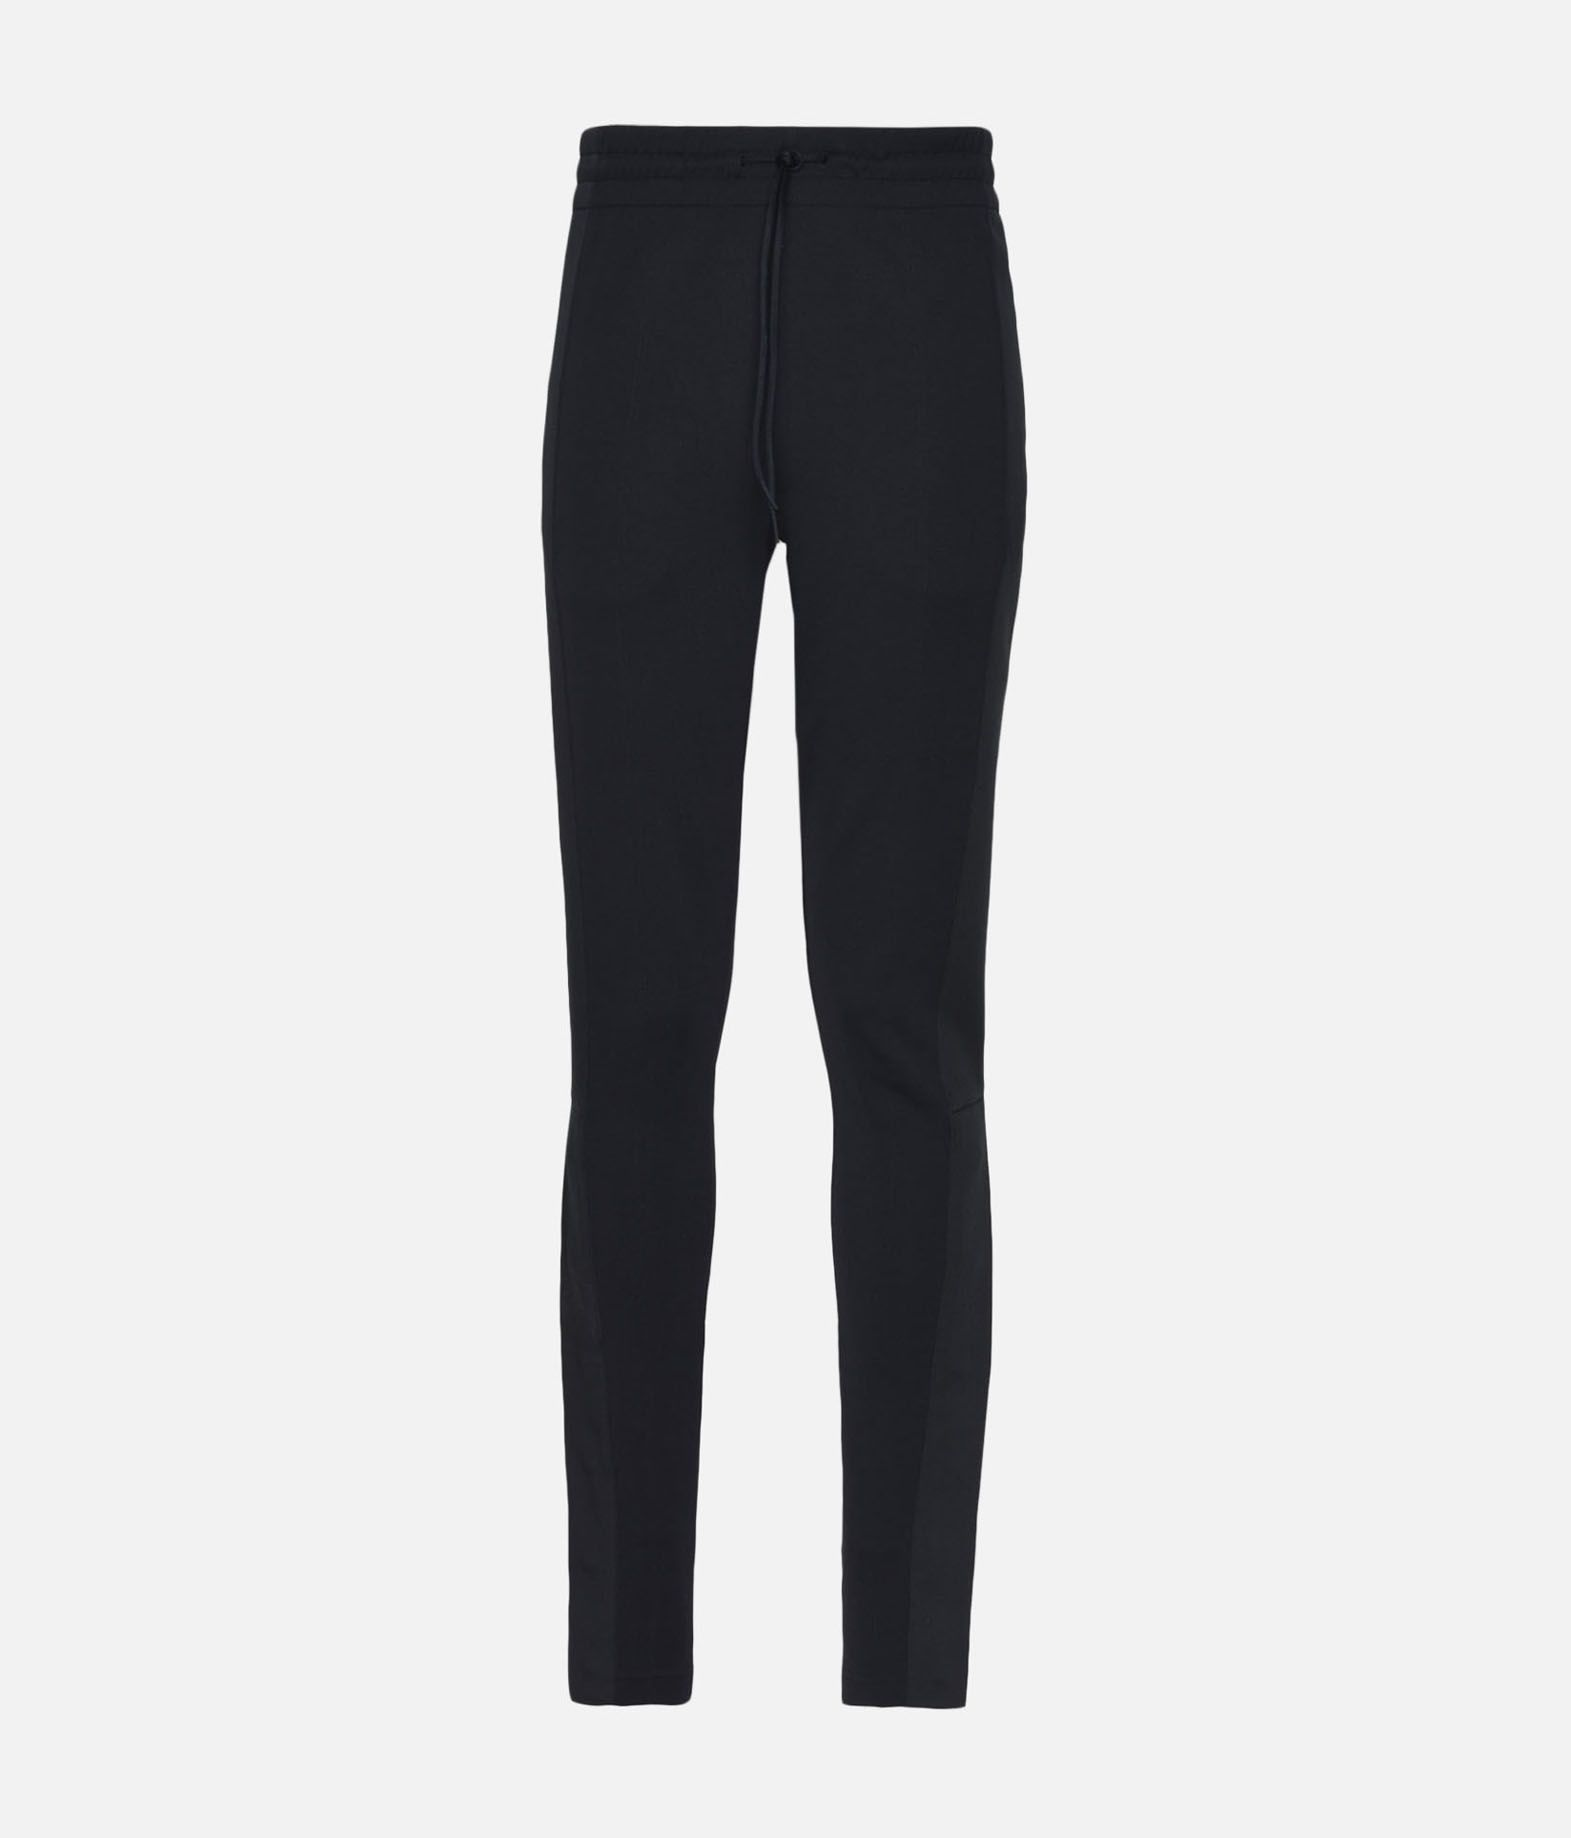 Y-3 Y-3 3-Stripes Firebird Track Pants Track pant Woman f